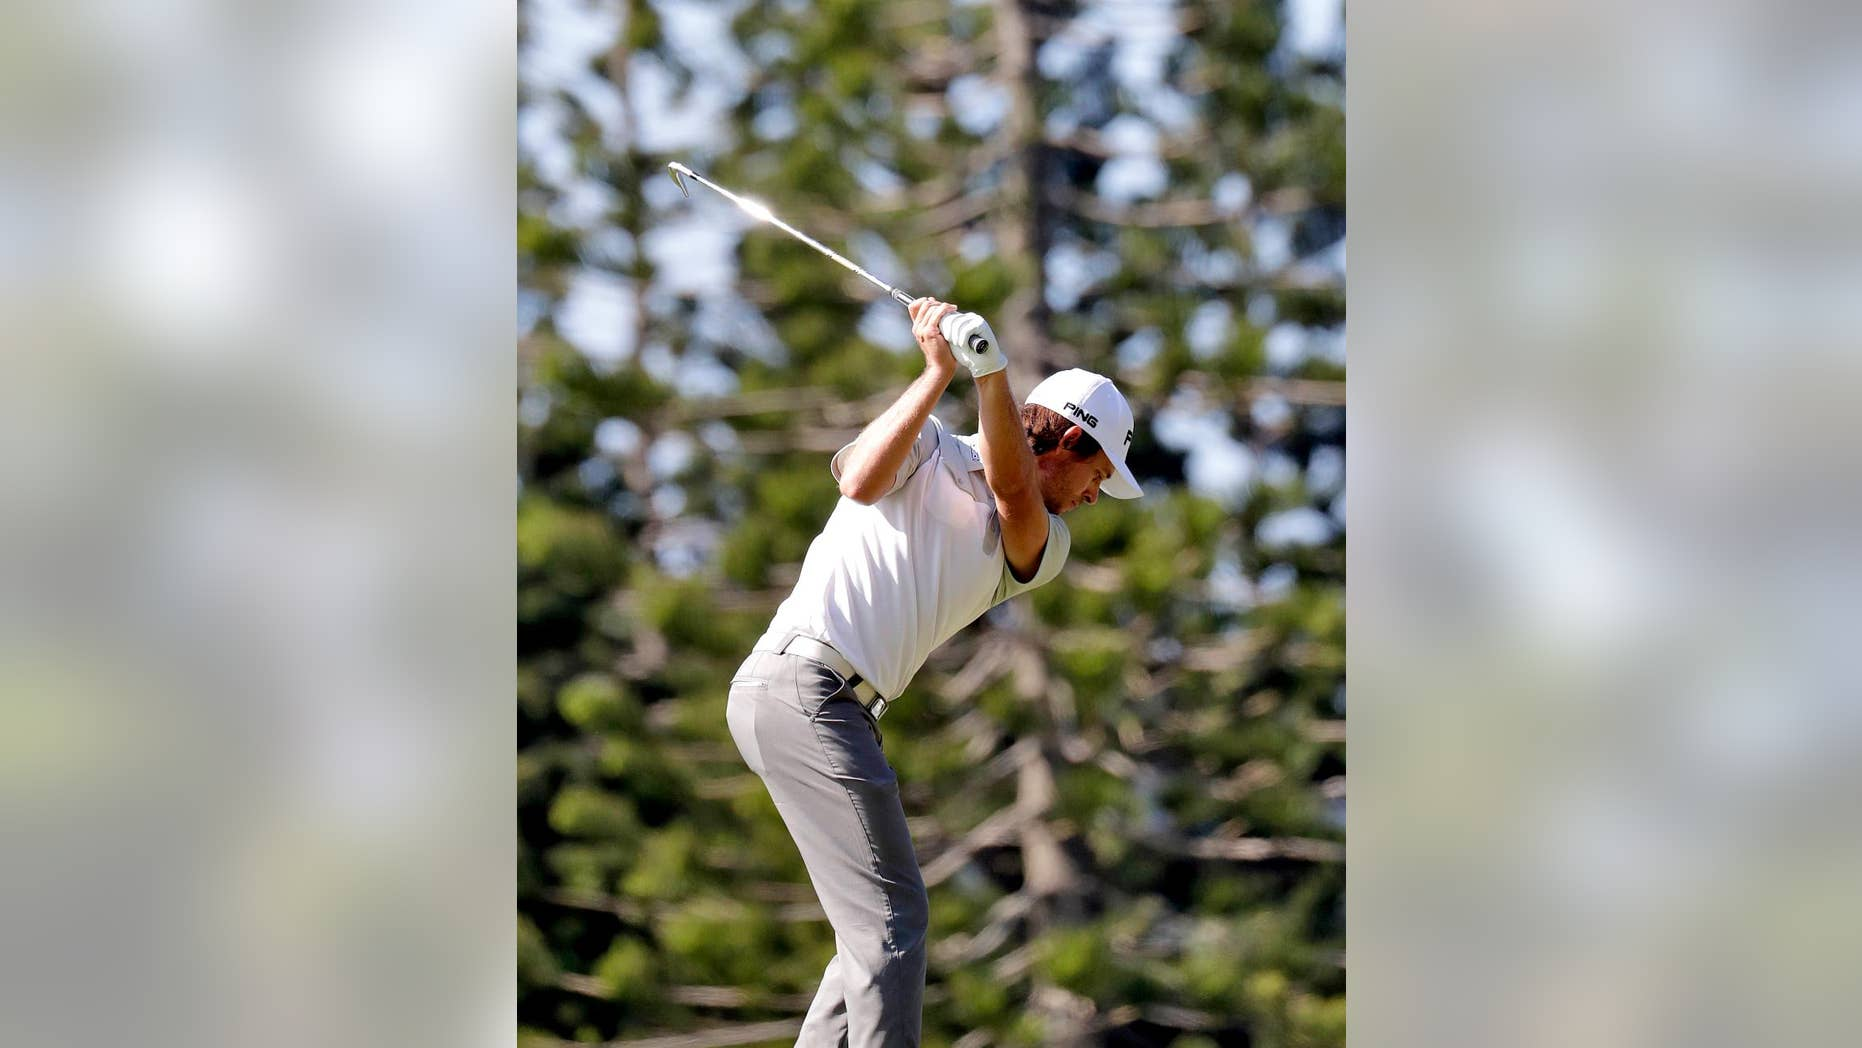 Aaron Baddeley, of Australia, hits from the second tee during the first round of the Tournament of Champions golf event, Thursday, Jan. 5, 2017, at Kapalua Plantation Course in Kapalua, Hawaii. (AP Photo/Matt York)